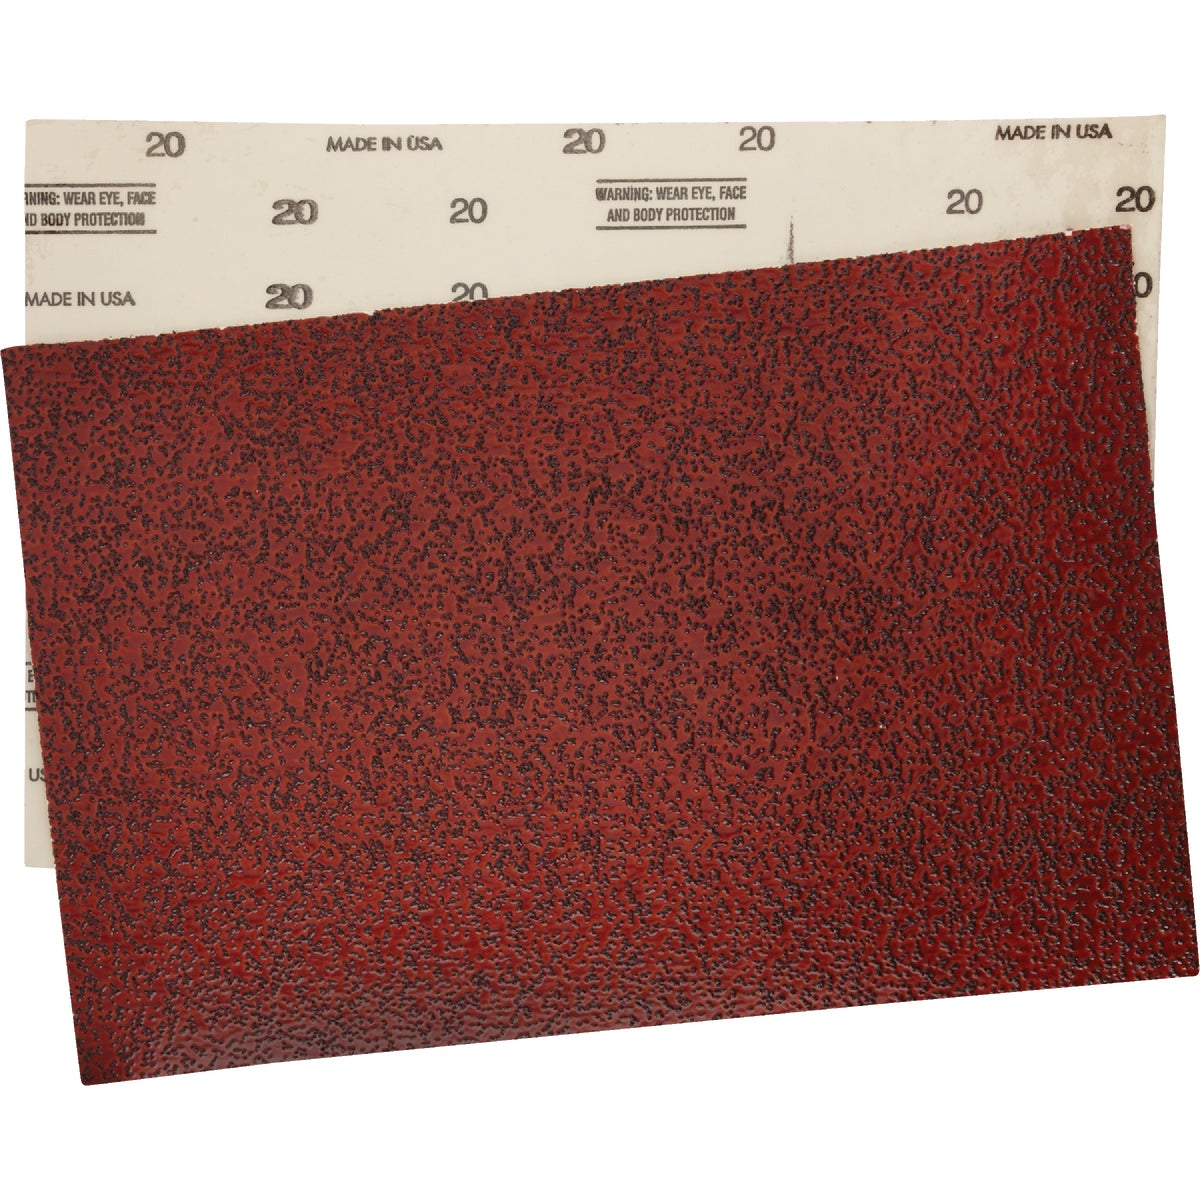 12X18 20G SANDING SHEET - 206-834020 by Virginia Abrasives